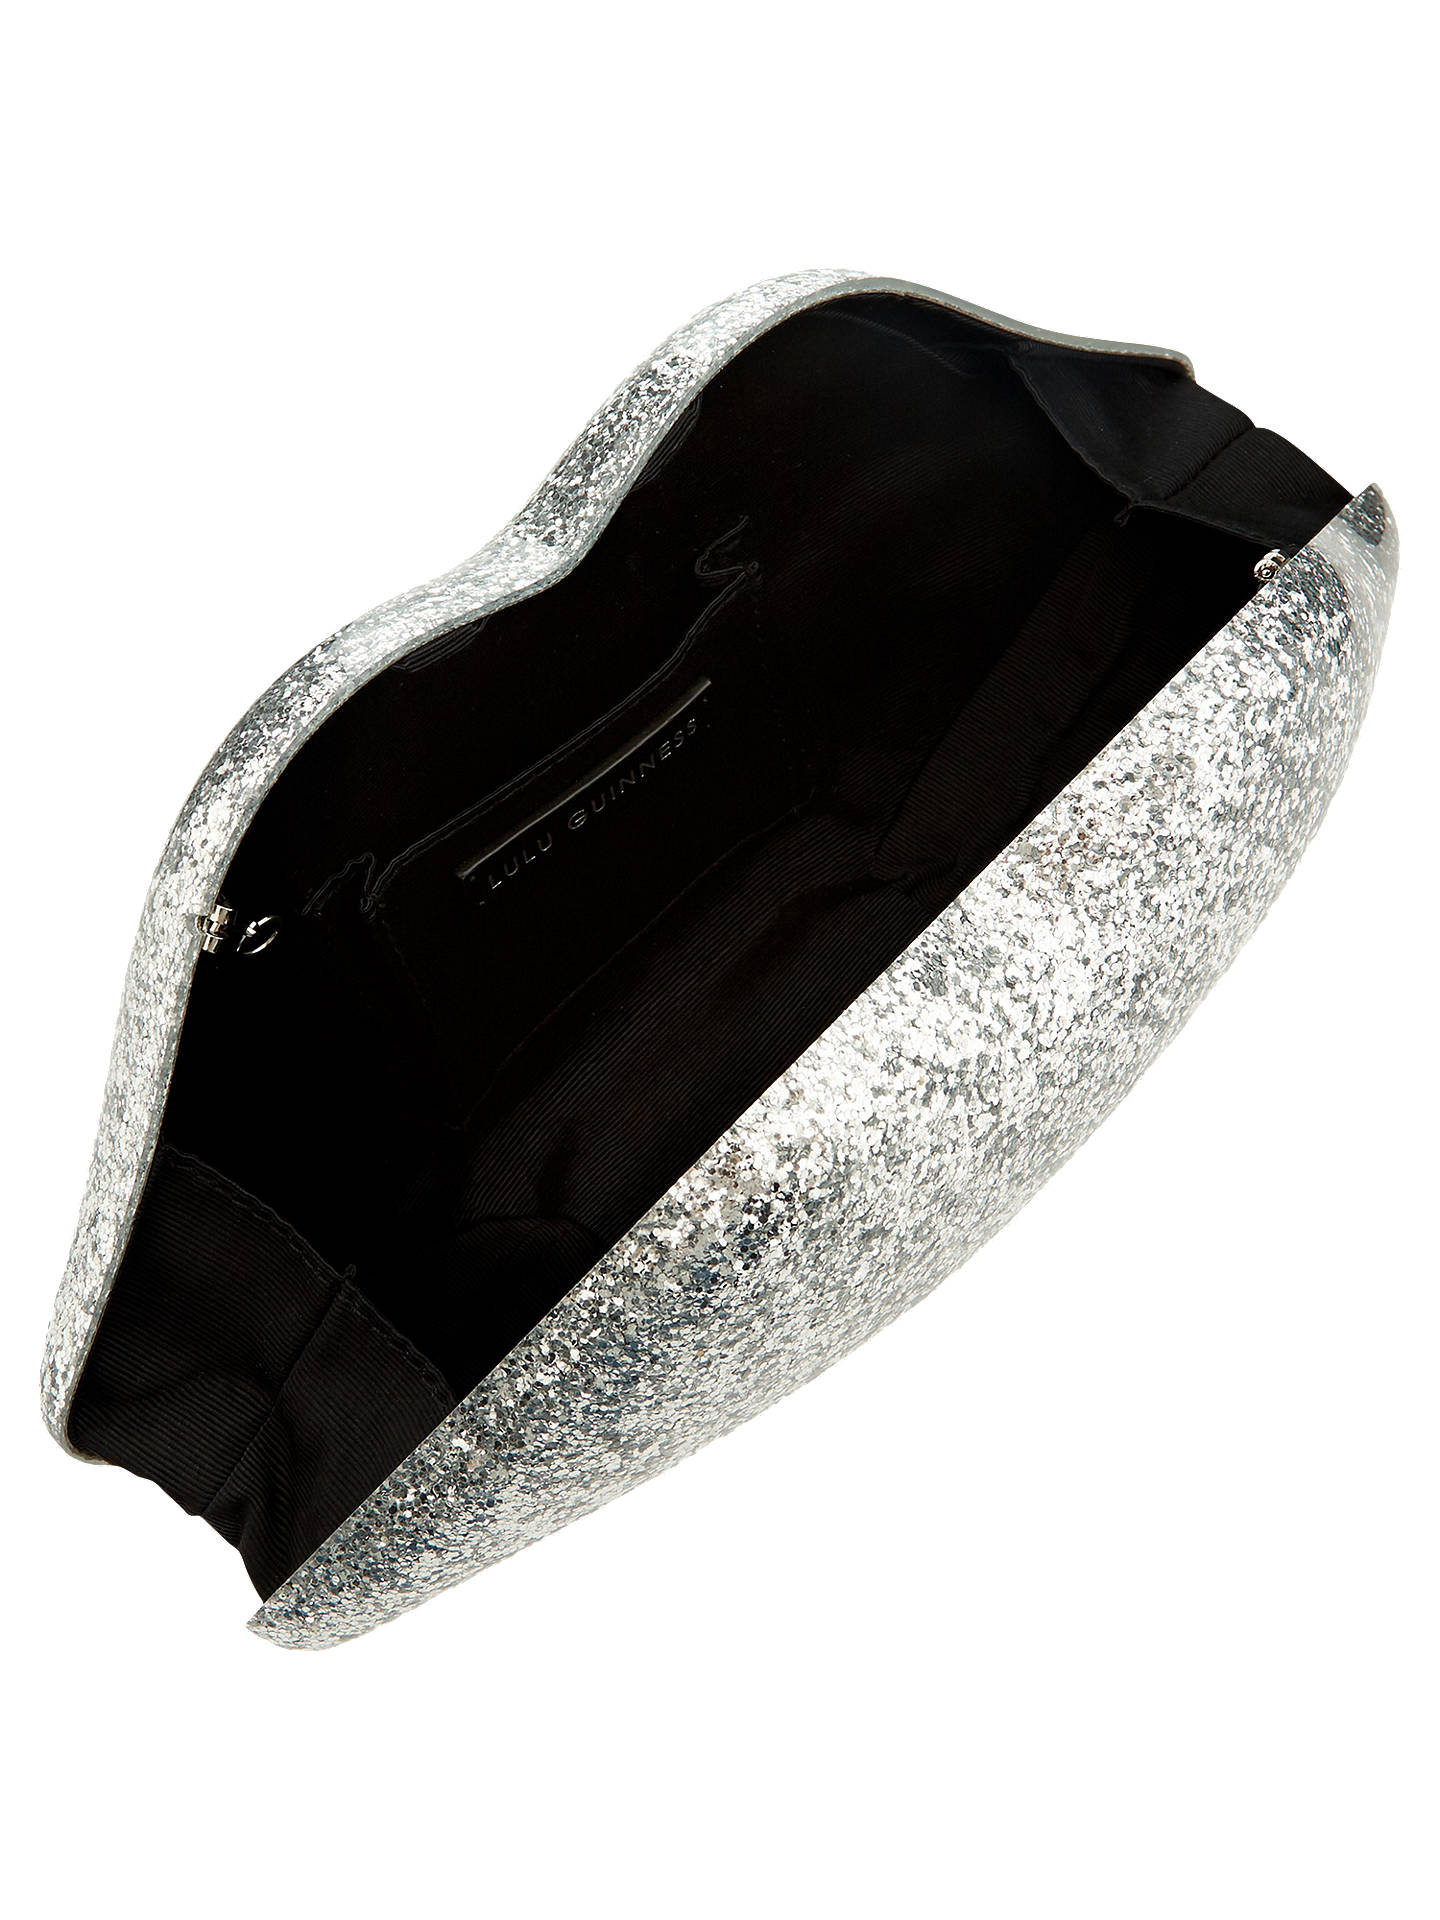 3c5cdc3524e4 ... Buy Lulu Guinness Large Perspex Lips Clutch Bag